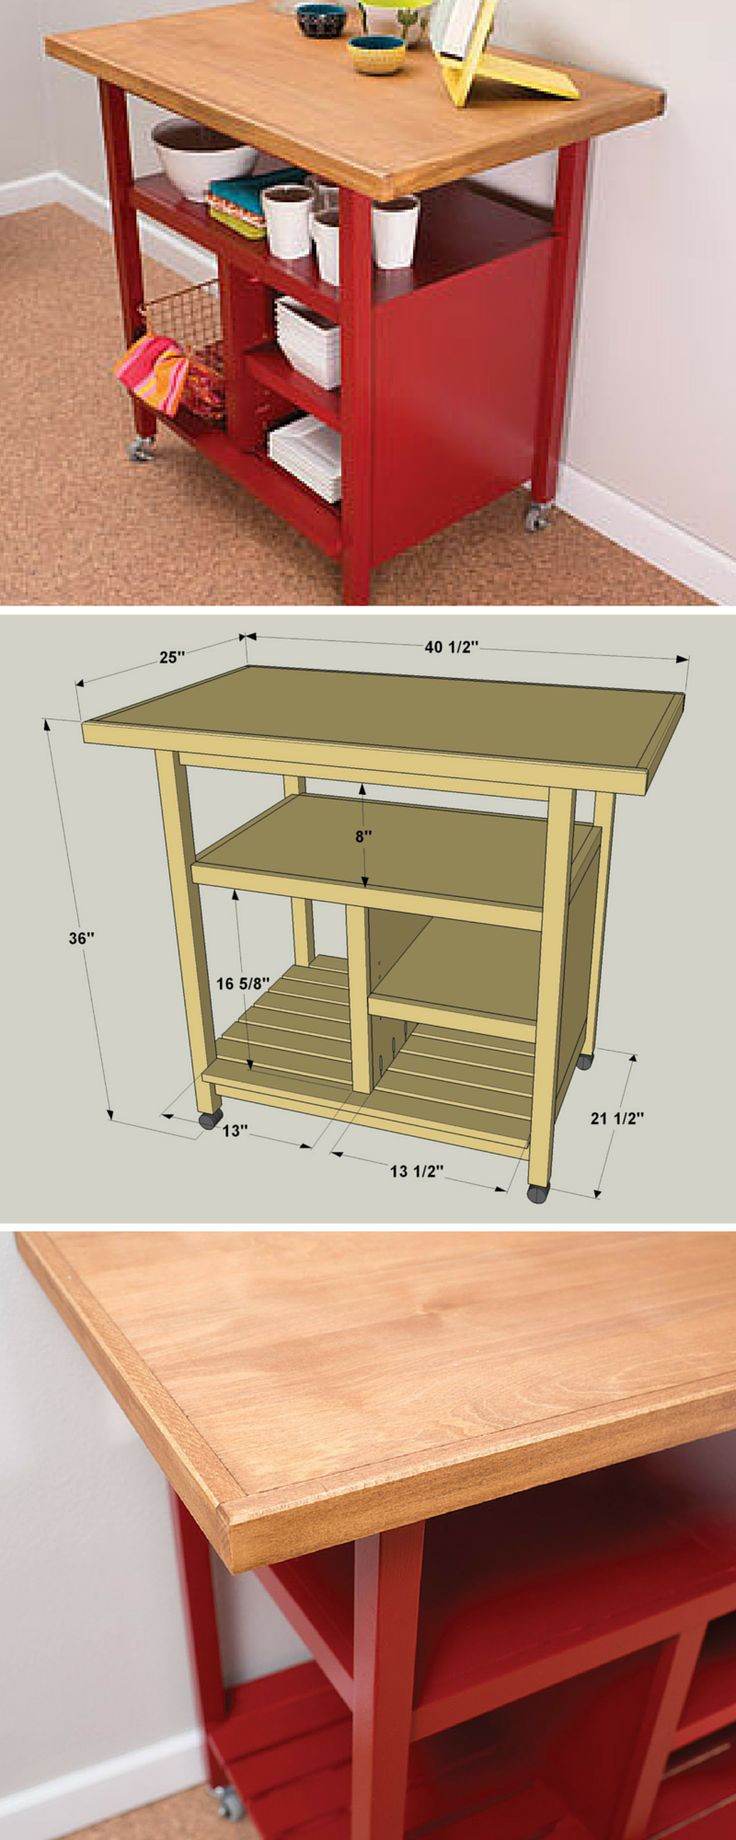 Best ideas about DIY Kitchen Cart Plans . Save or Pin 1000 ideas about Rolling Kitchen Island on Pinterest Now.